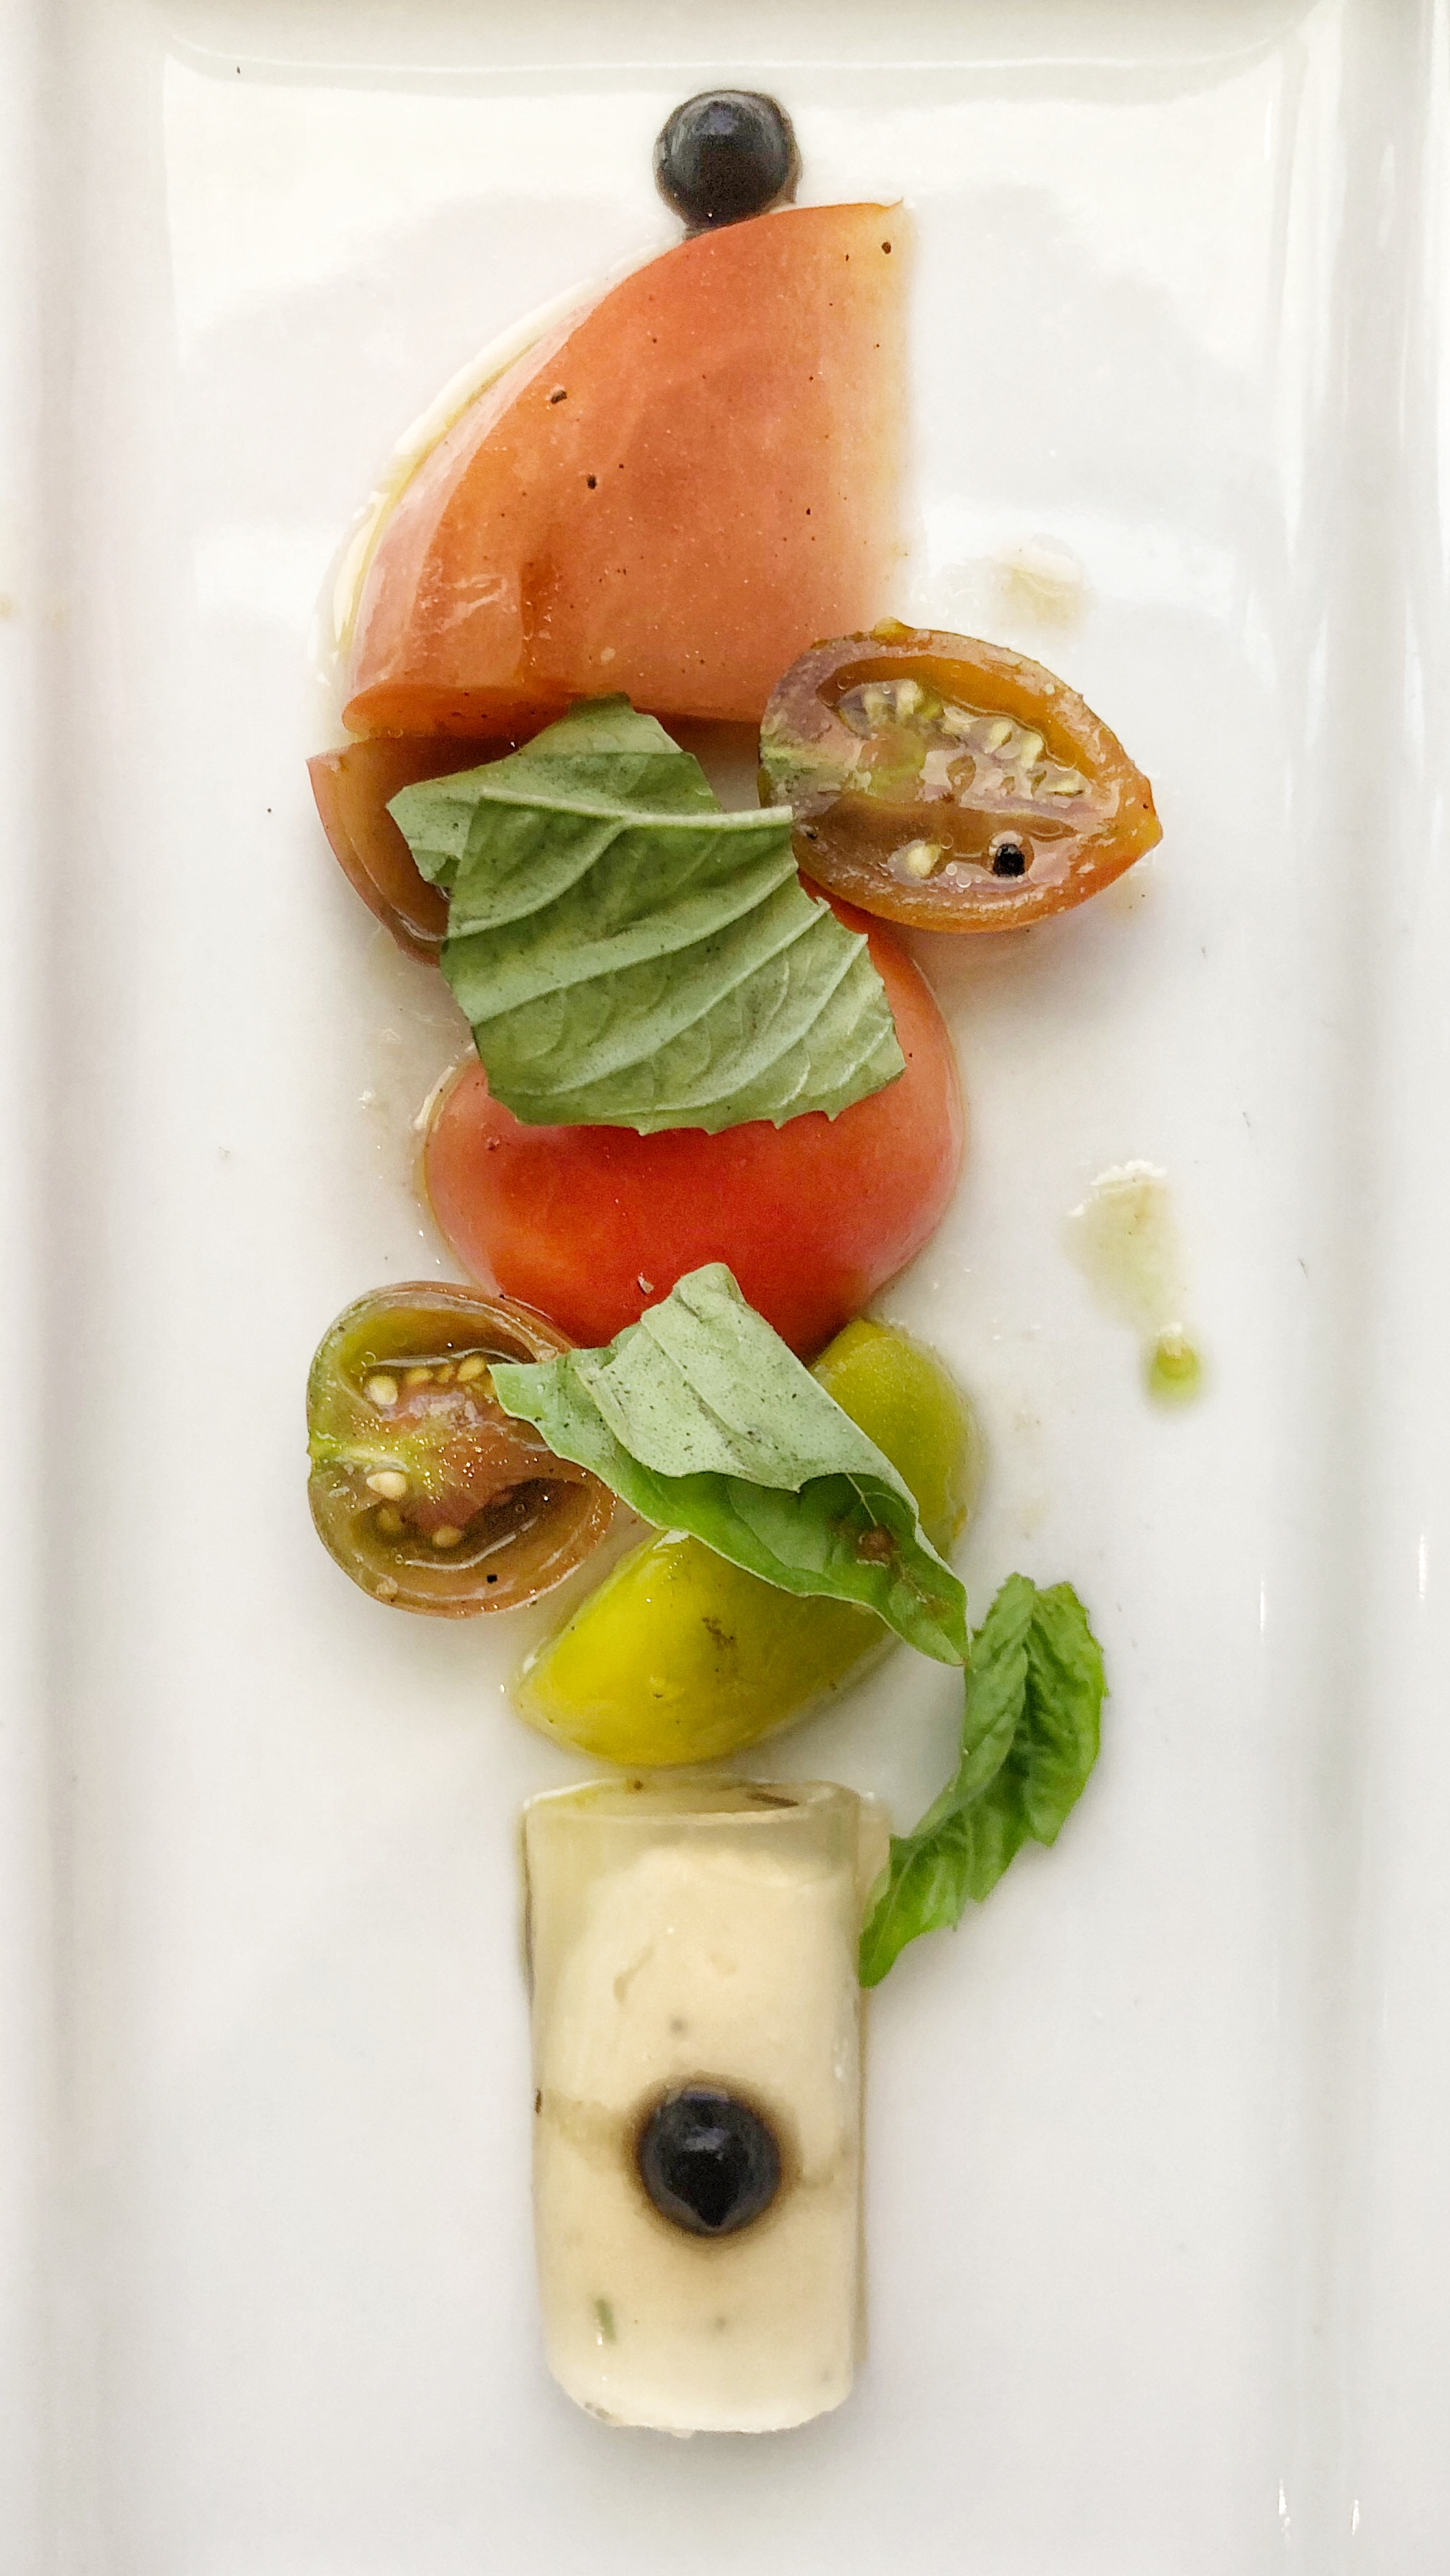 Heirloom Tomato Salad - tomato cannellini, black tomato sauce, basilThe cannellini was made with a tomato gel instead of pasta--so cool!